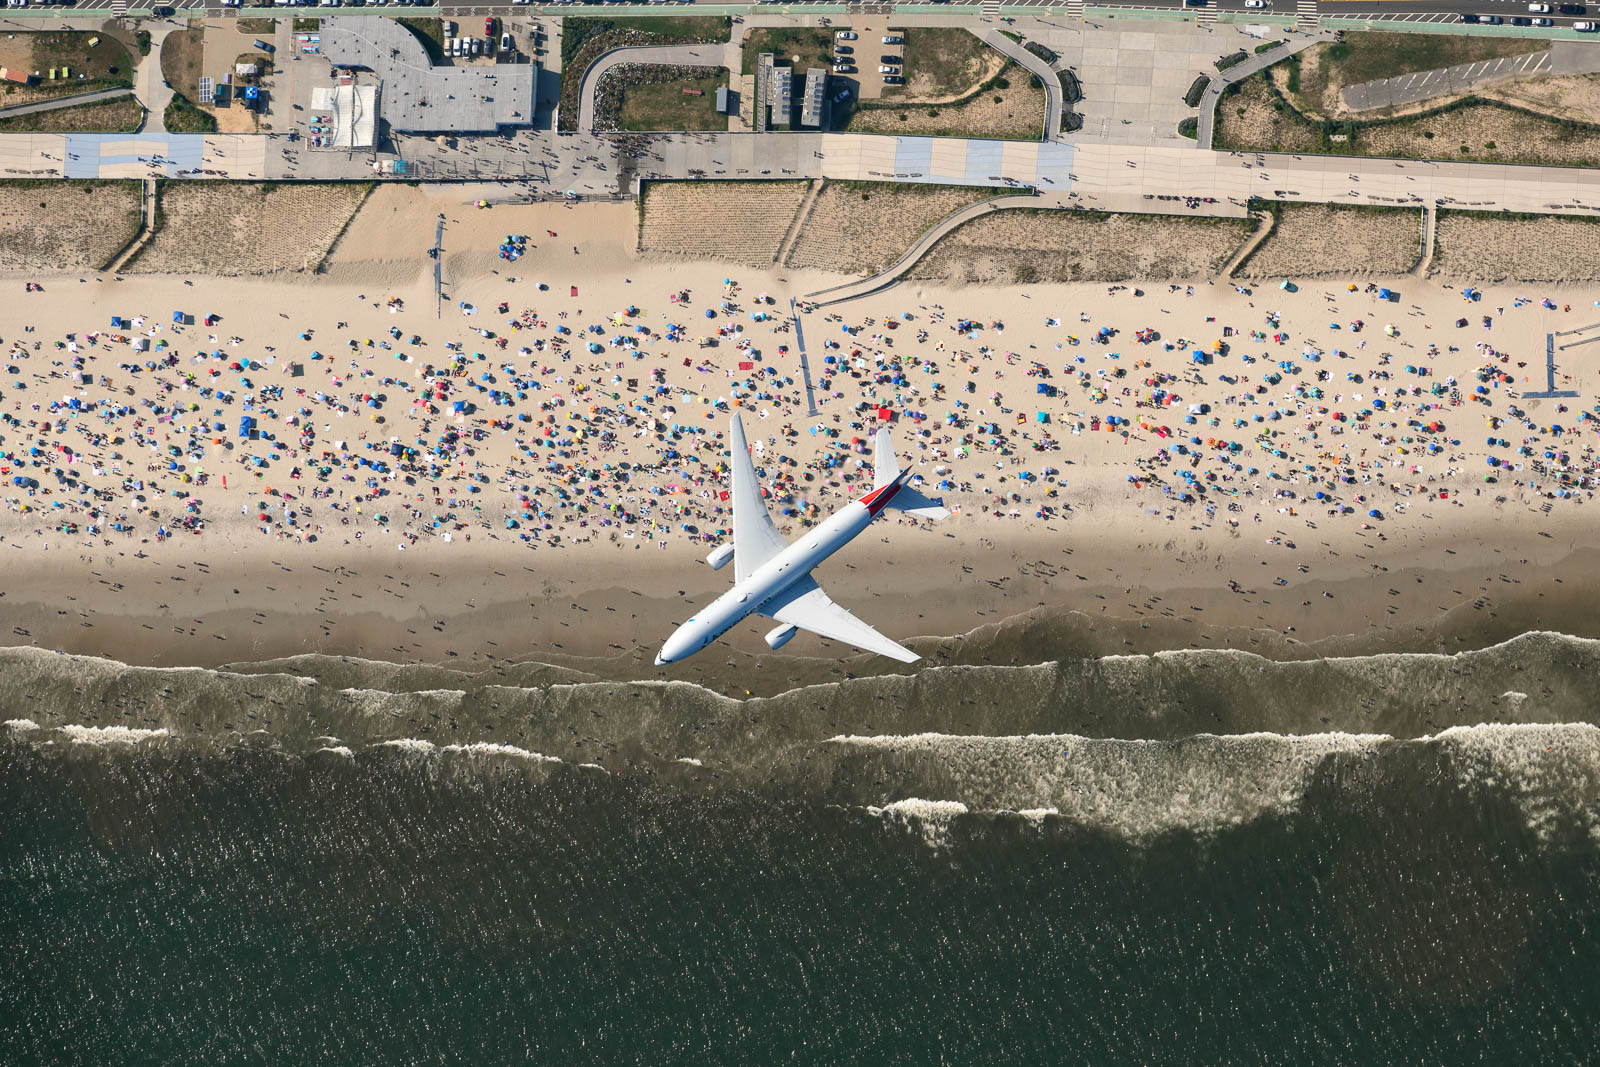 AA1165: JFK to Miami (American Airlines B777 / The Rockaways, NY)